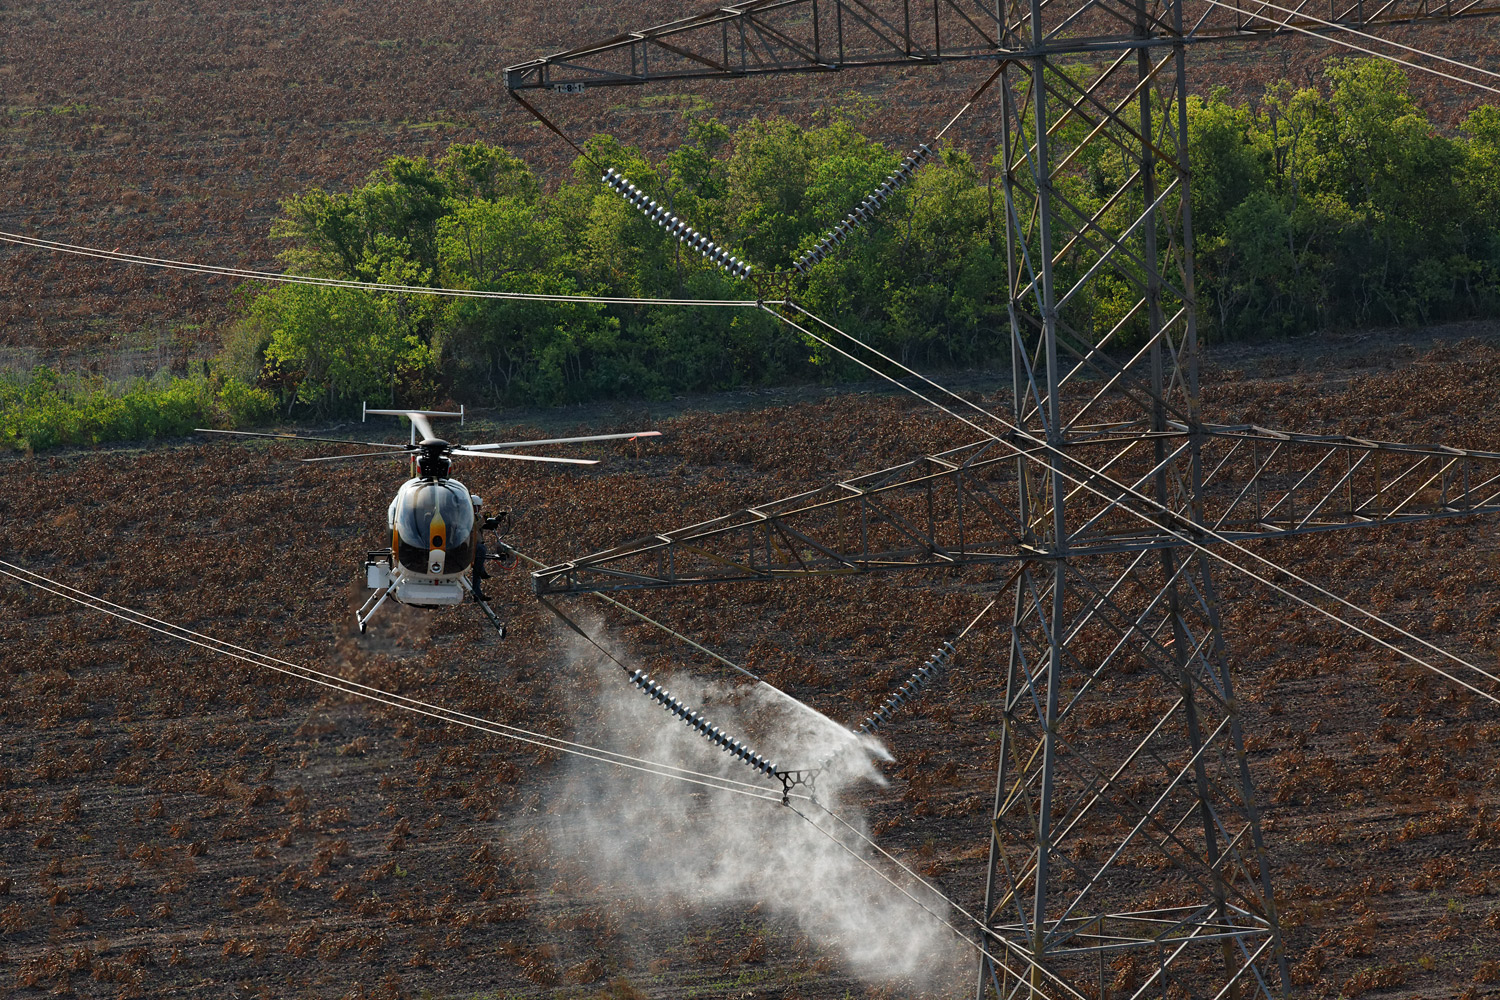 Normally rain would be enough to rinse the accumulated dust and sand from power transmission lines, preventing them from damage, but in an extreme drought, some power companies hire helicopters to hose the lines off, using tens of thousands of gallons of purified water in the process.